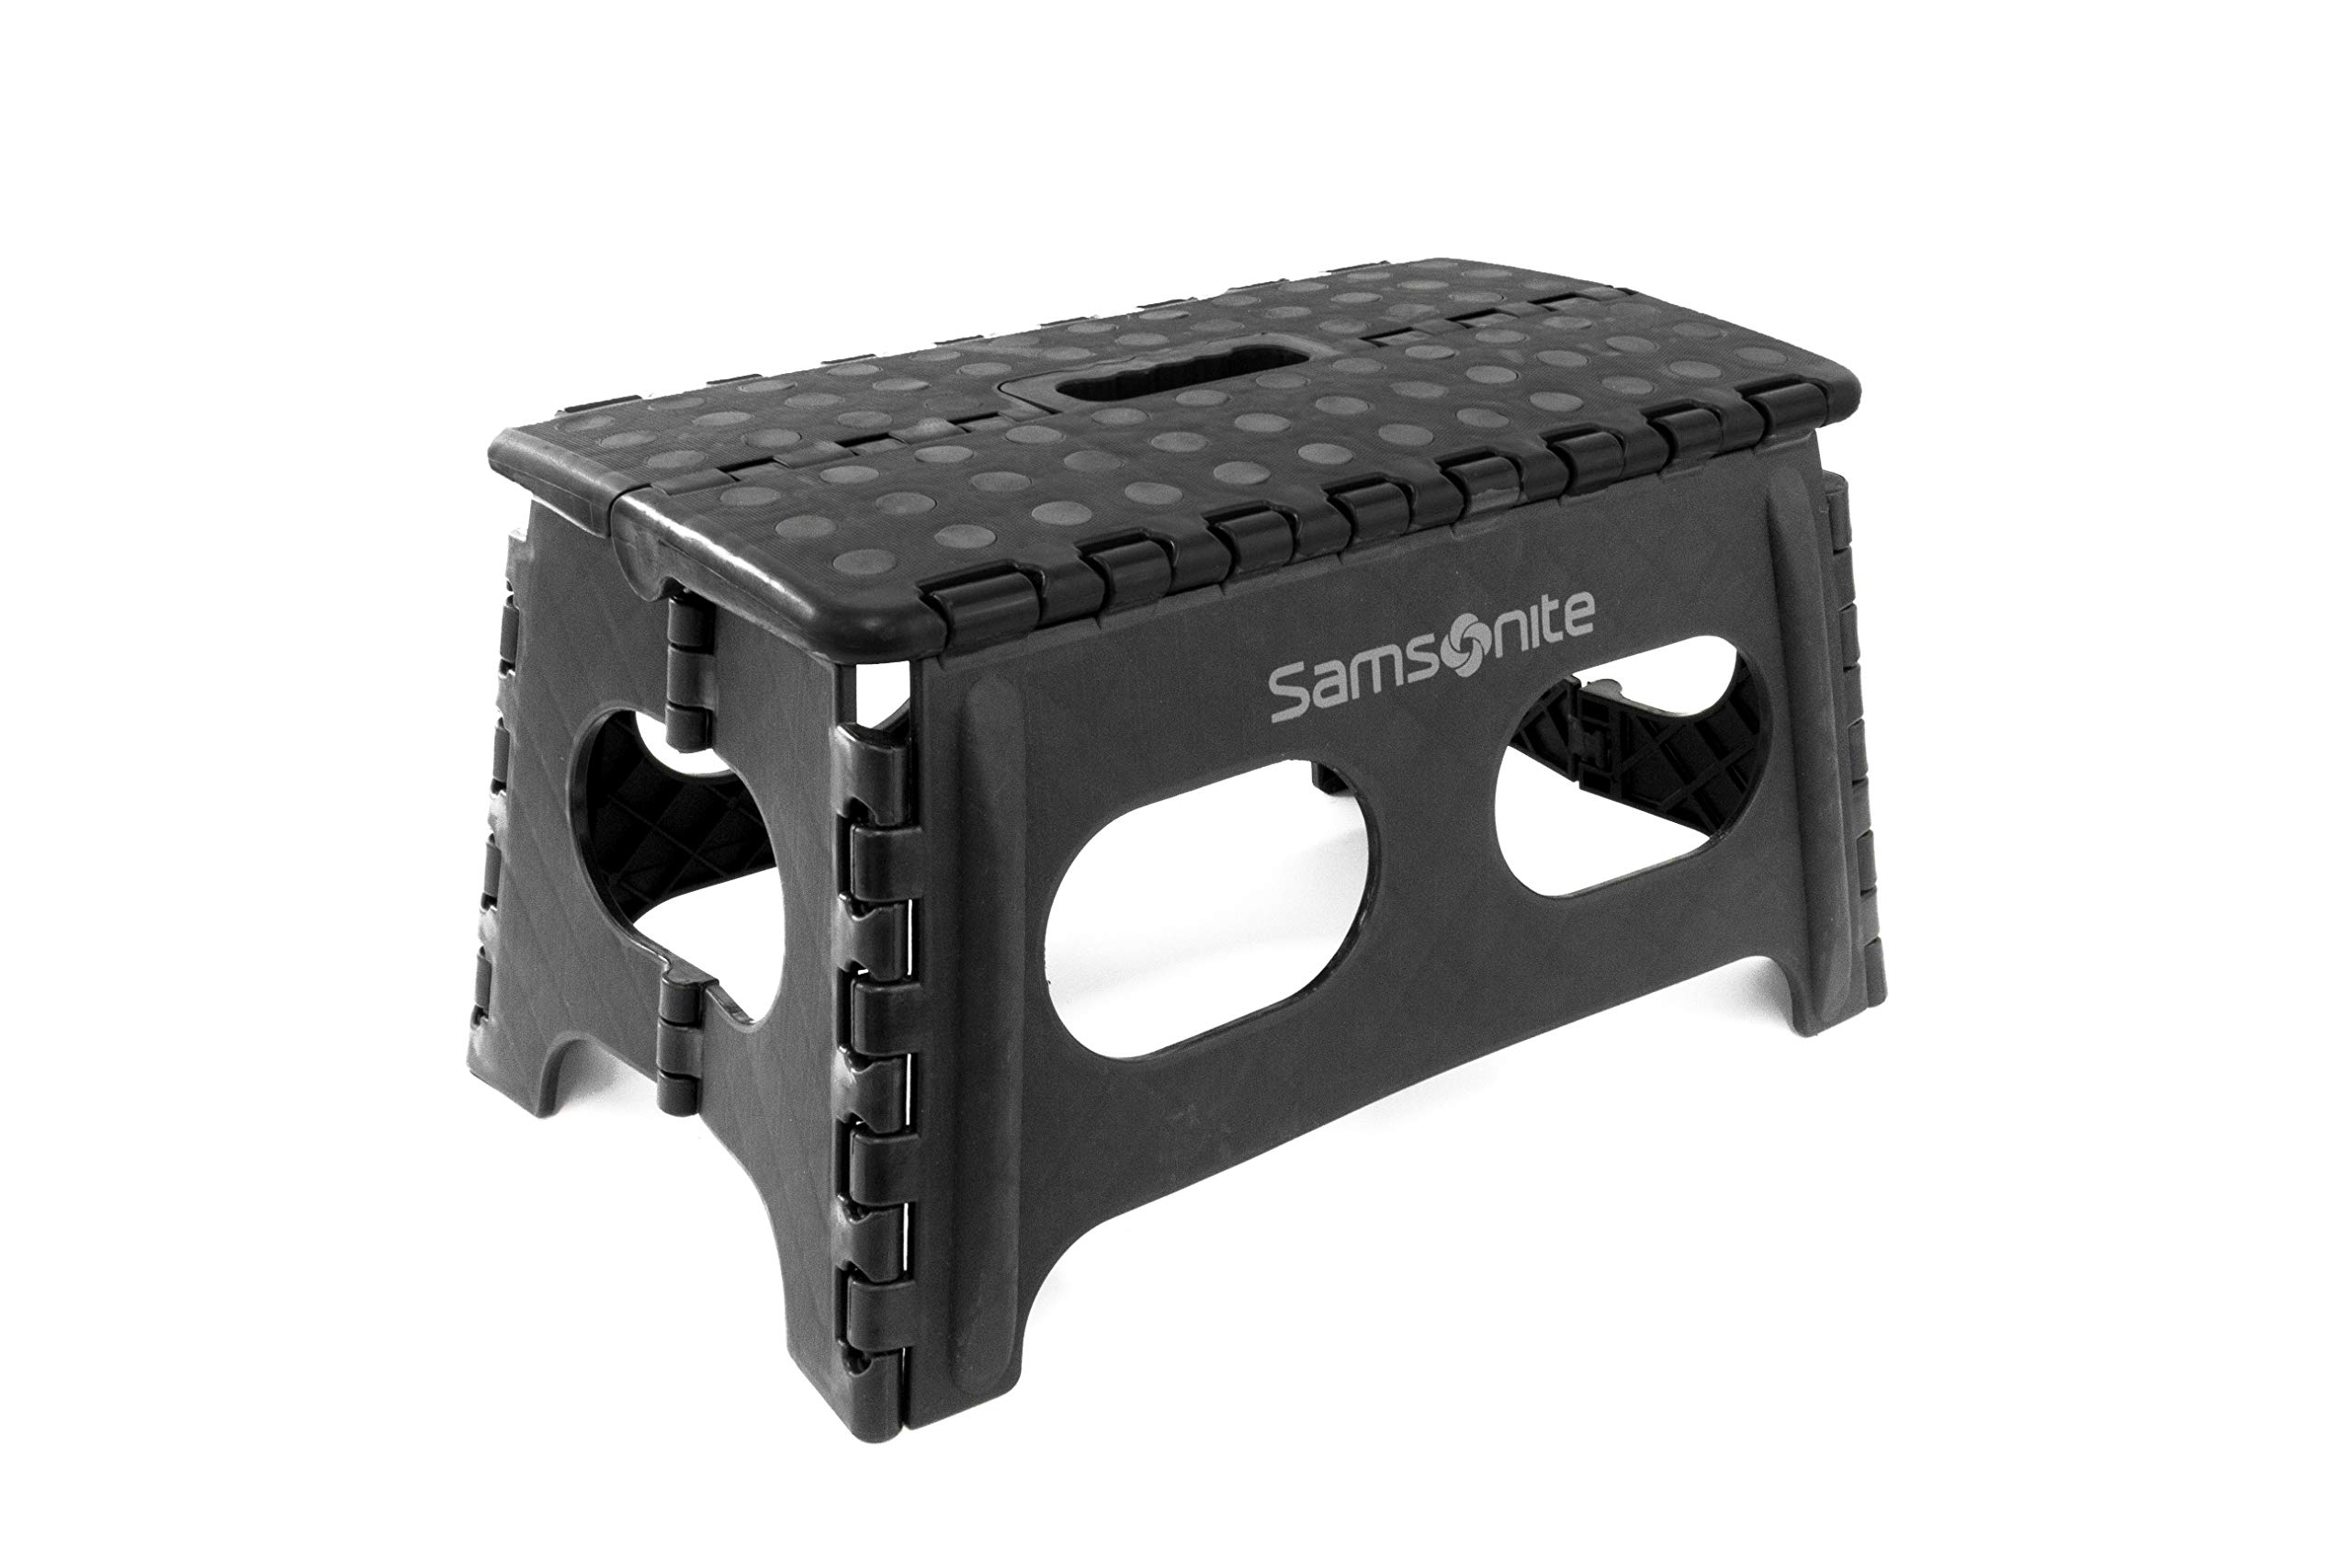 Samsonite Heavy Duty Step Stool in Black - (9'' Extra Wide)